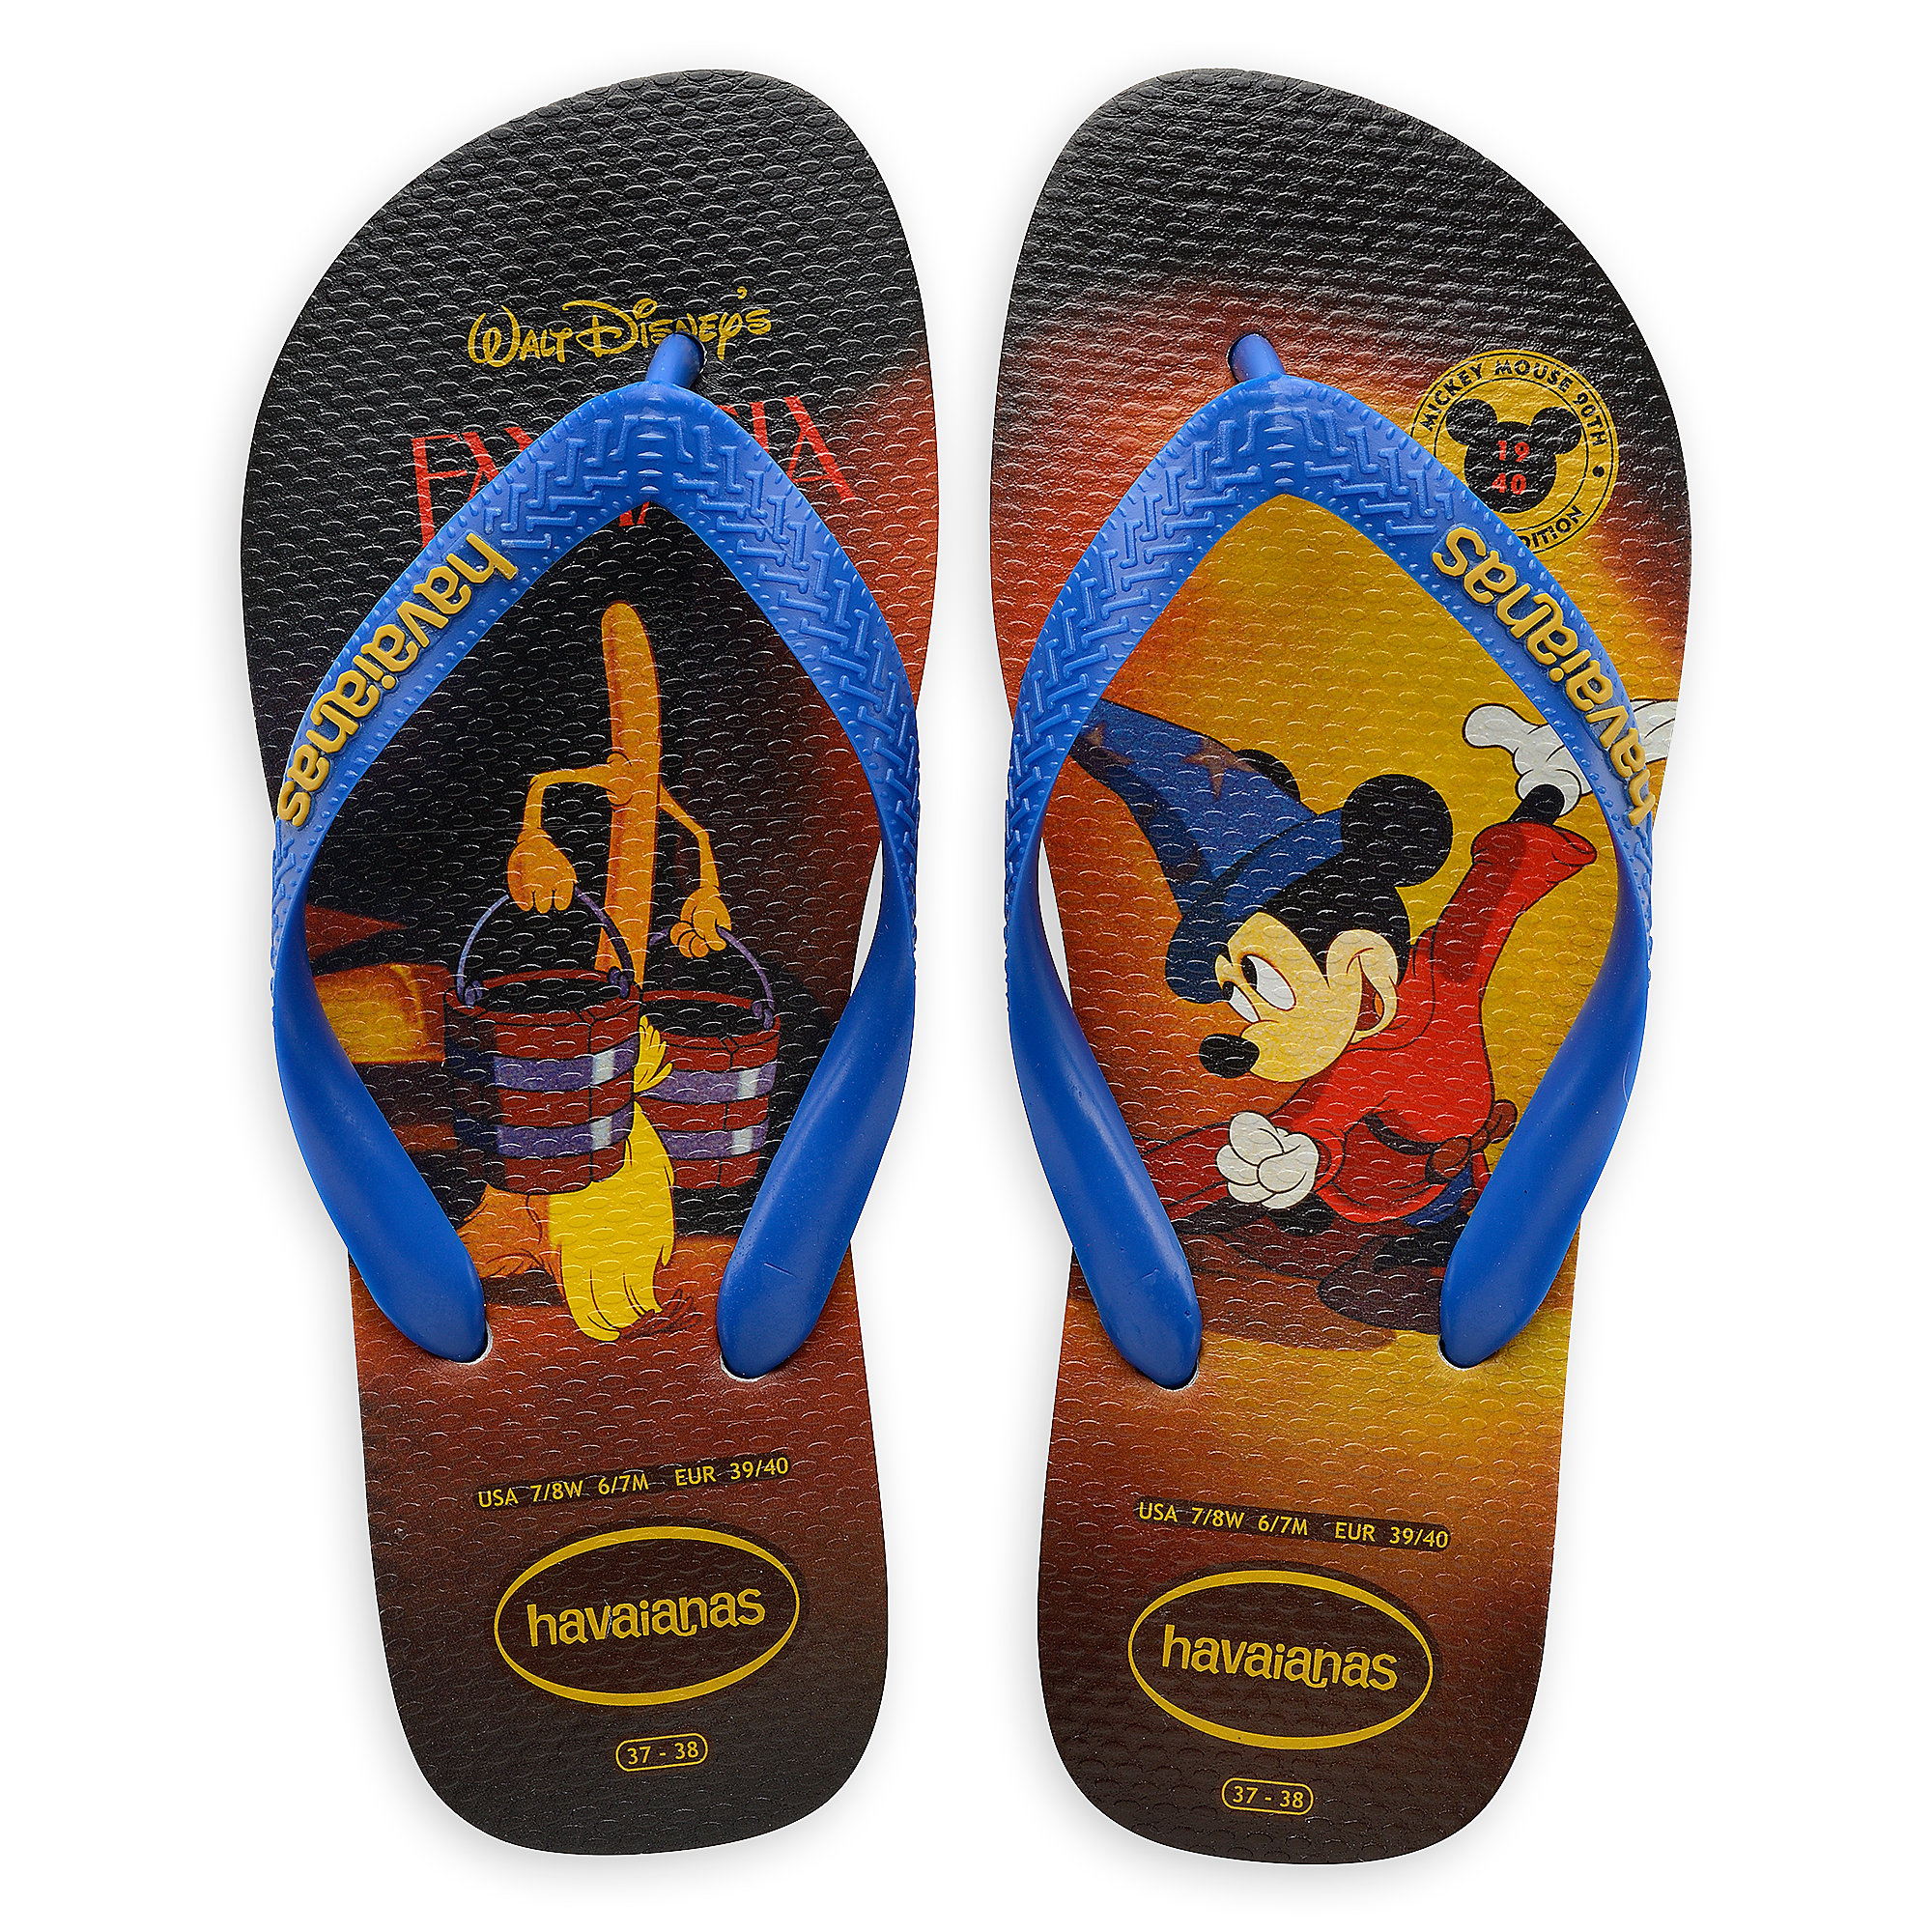 f234141b77e5a Sorcerer Mickey Mouse Flip Flops for Adults by Havaianas - 1940s is ...